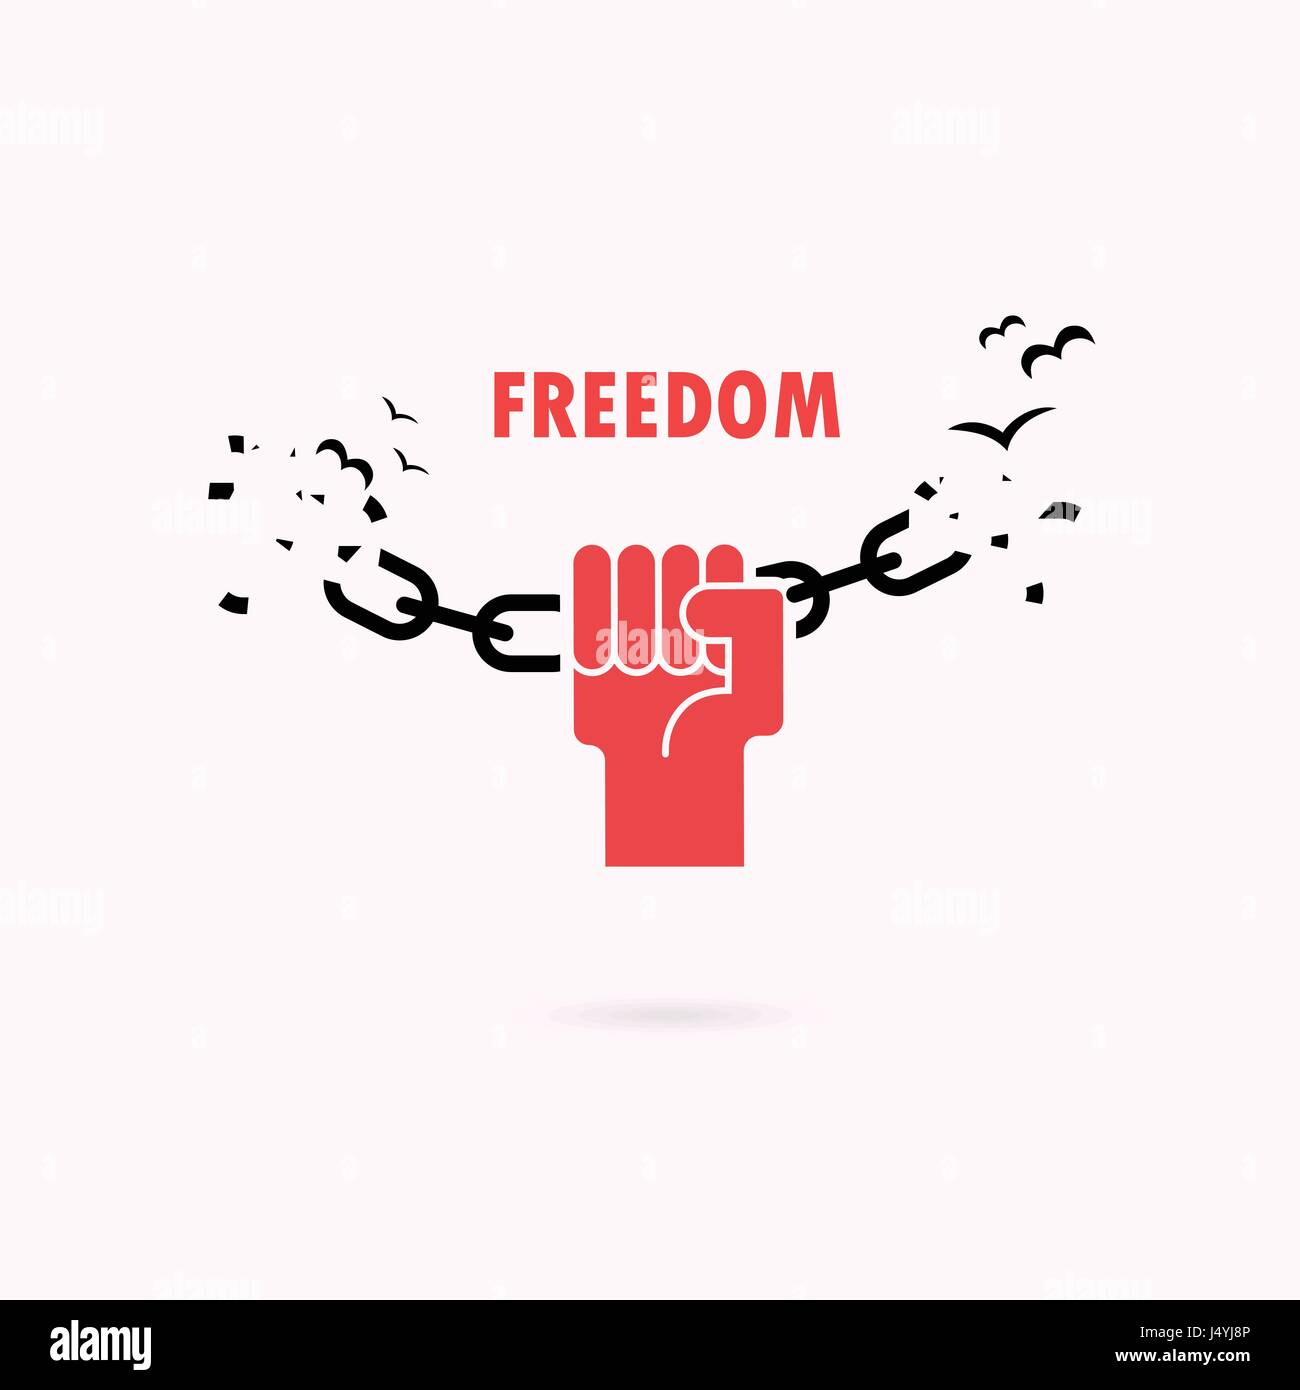 Human Hands And Broken Chain With The Bird SymbolsFreedom ConceptVector Illustration